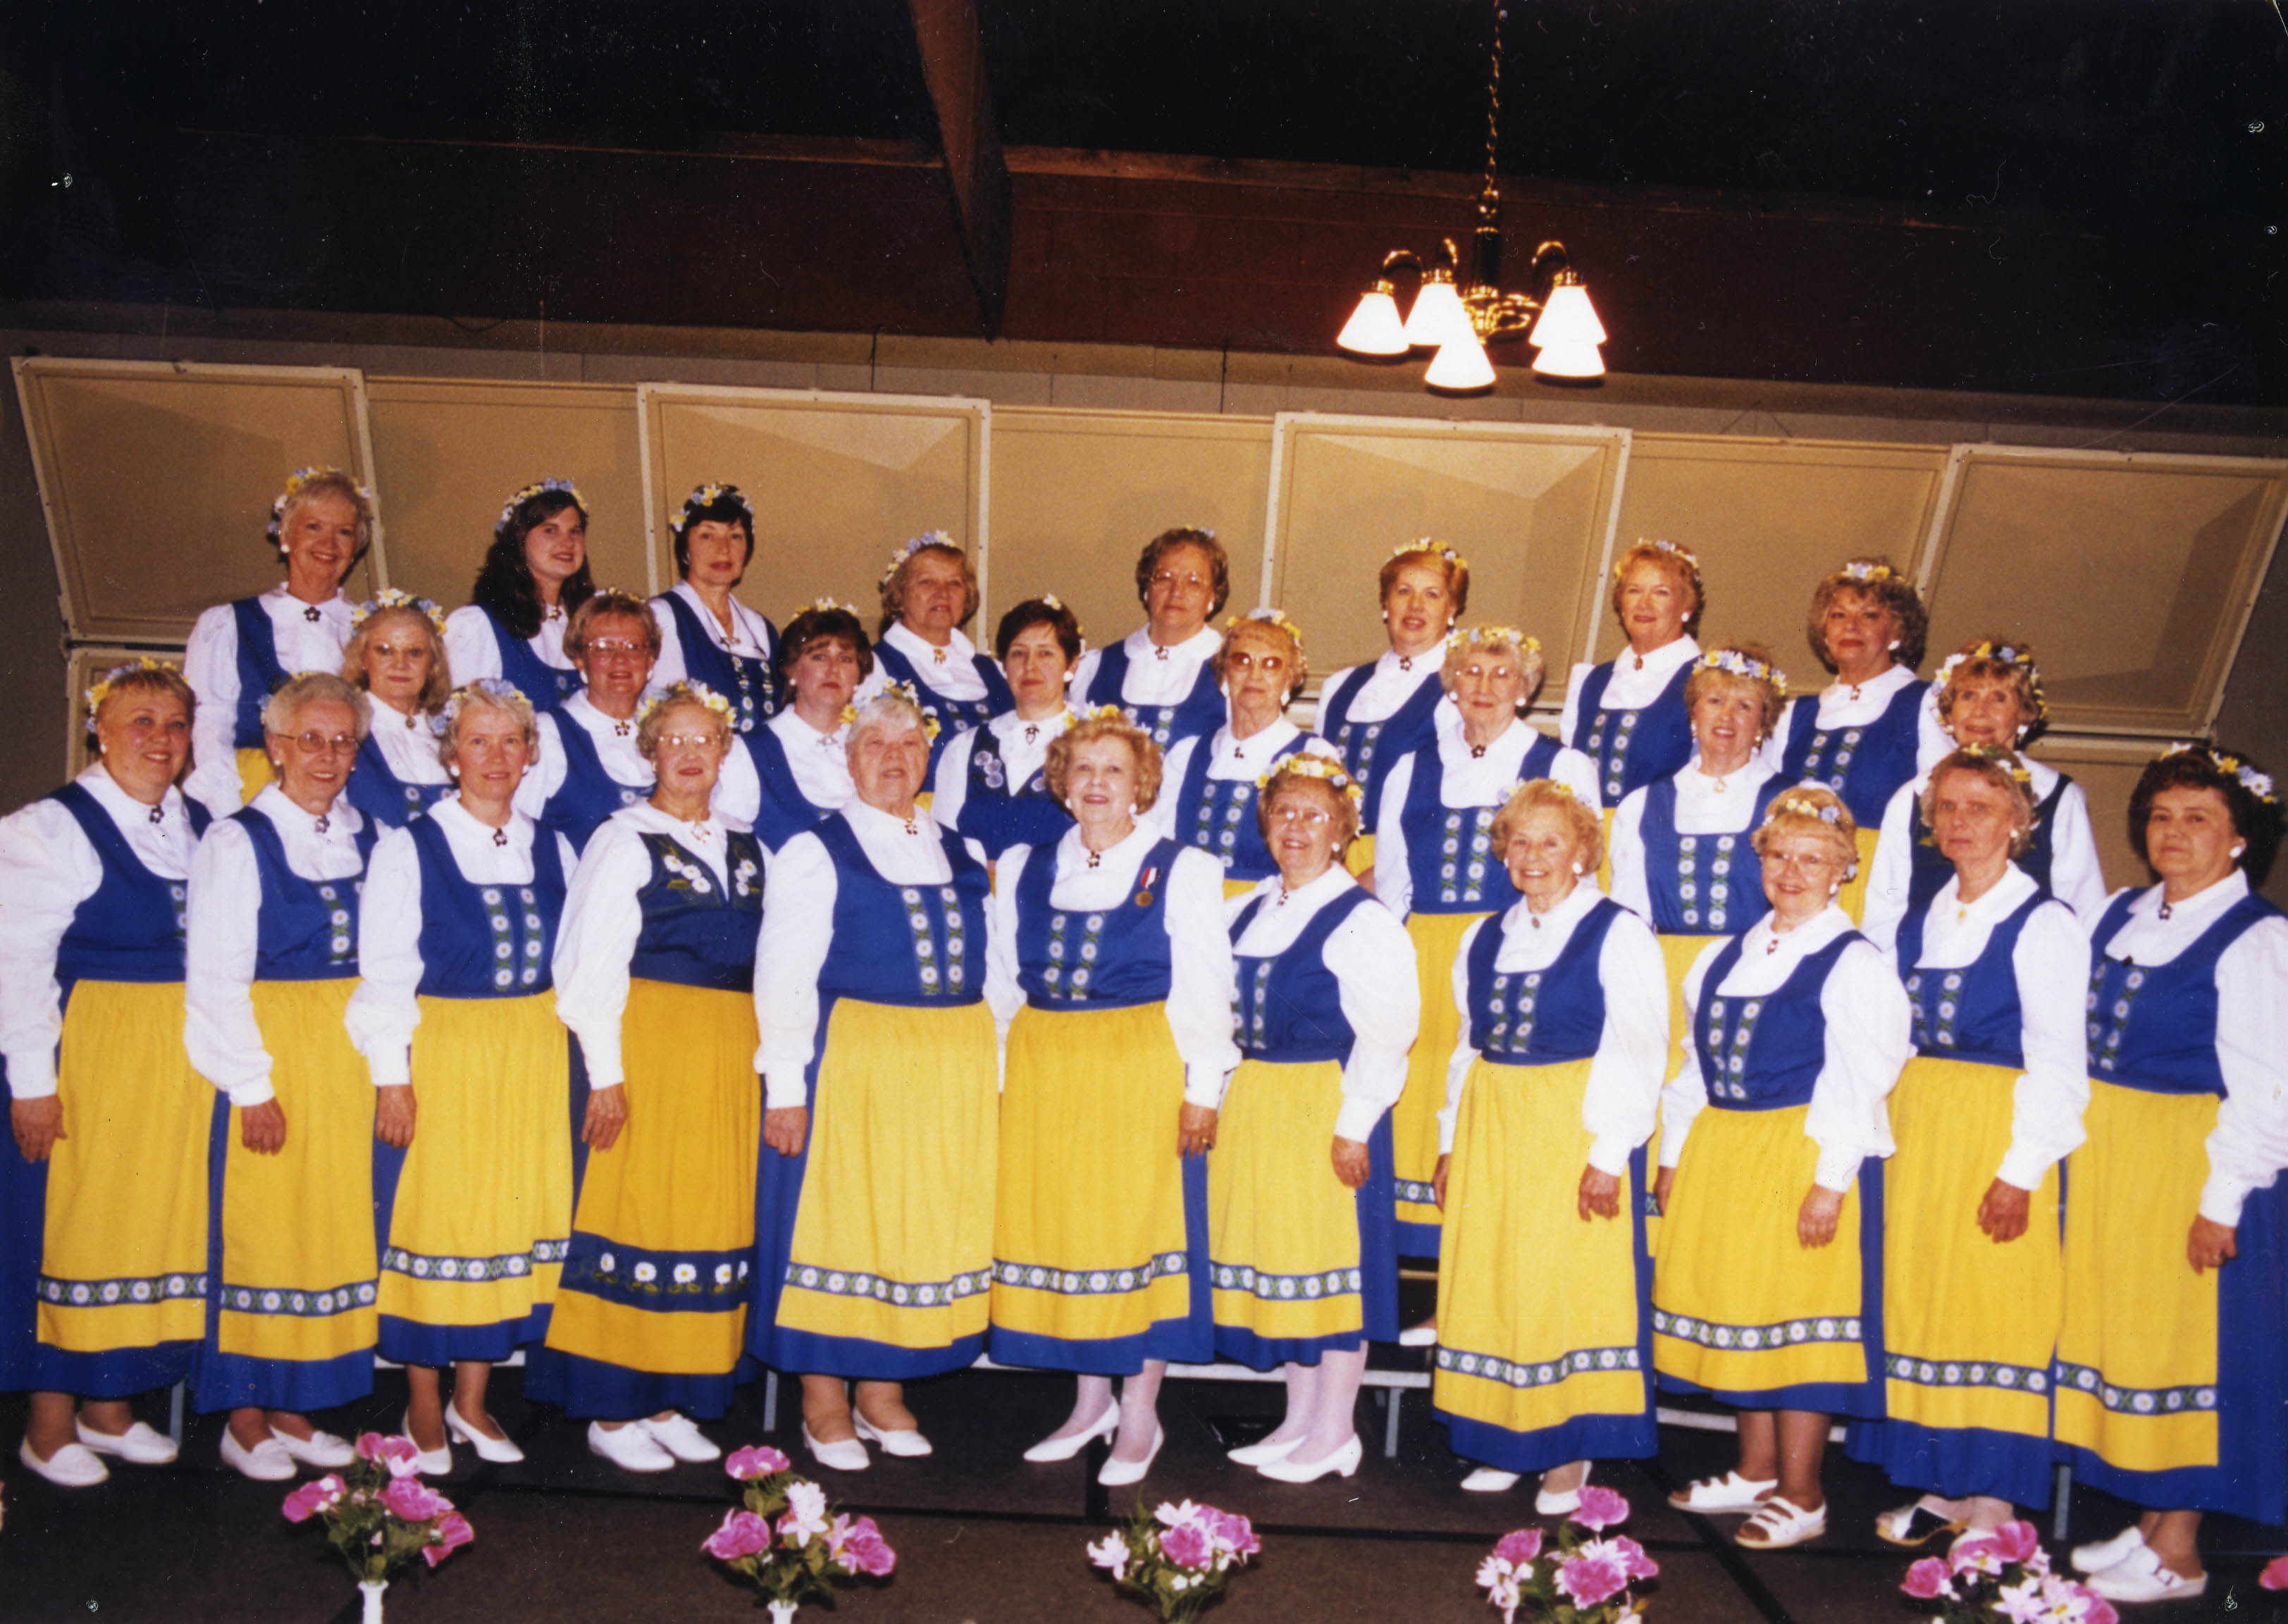 The Scandia Chorus from the Swedish Club in Farmington, Michigan. From American Union of Swedish Singers records, Swenson Swedish Immigration Research Center.